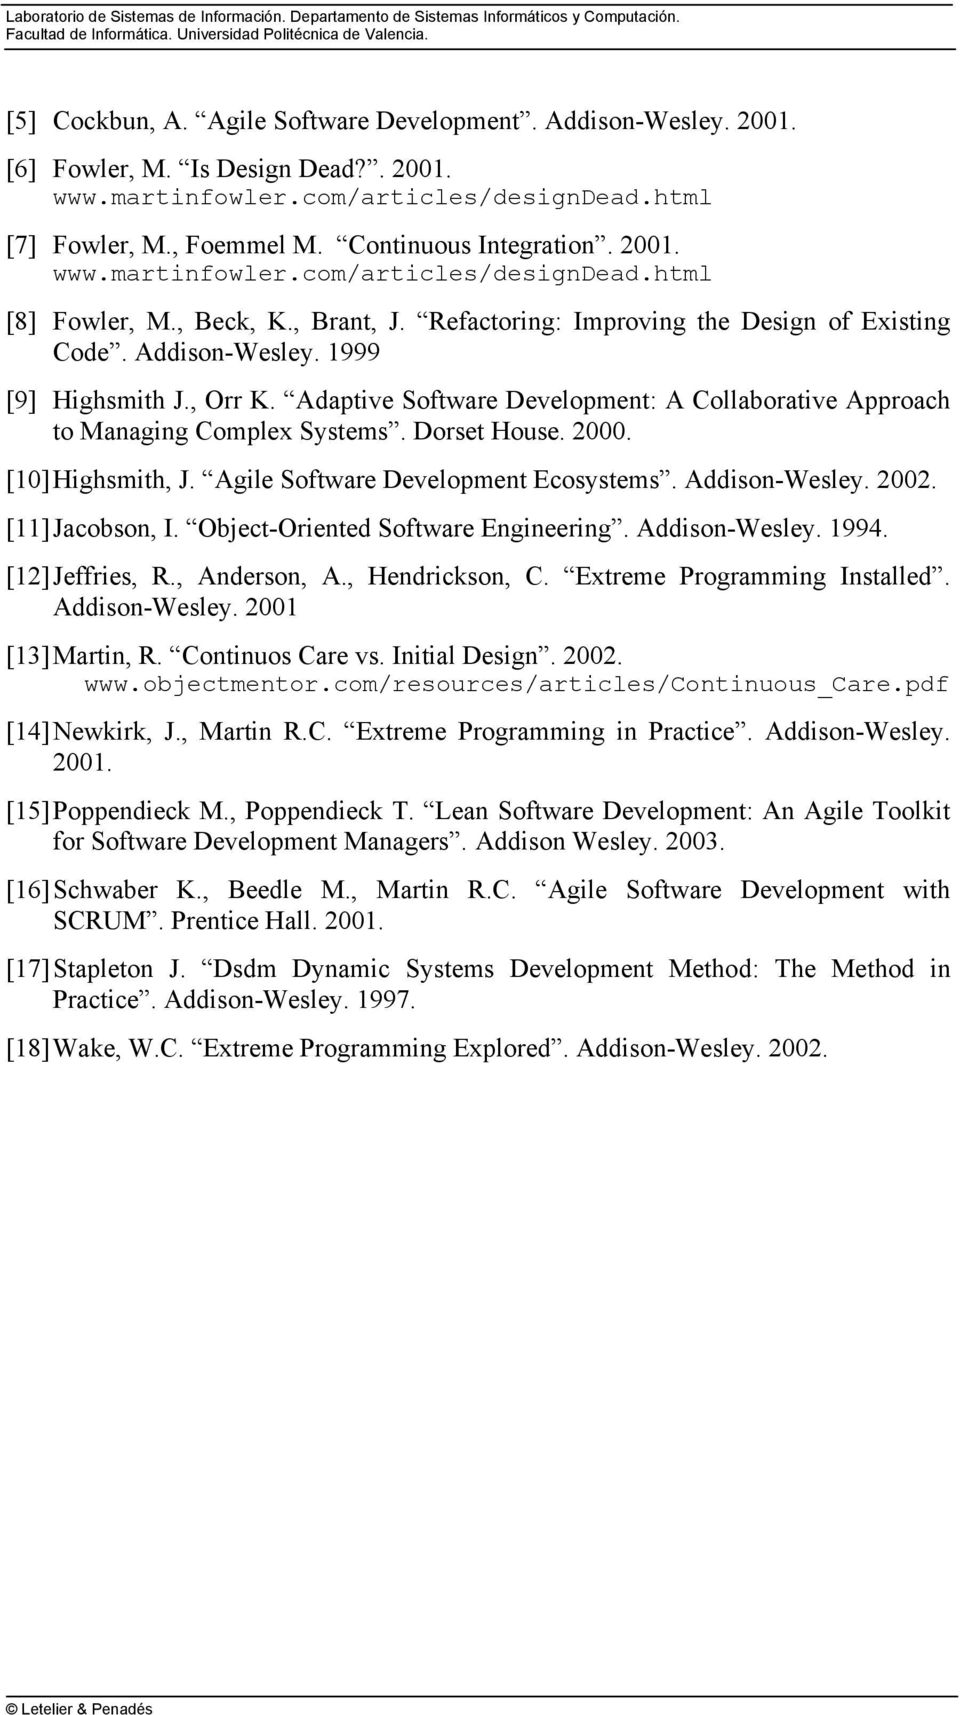 Adaptive Software Development: A Collaborative Approach to Managing Complex Systems. Dorset House. 2000. [10] Highsmith, J. Agile Software Development Ecosystems. Addison-Wesley. 2002.